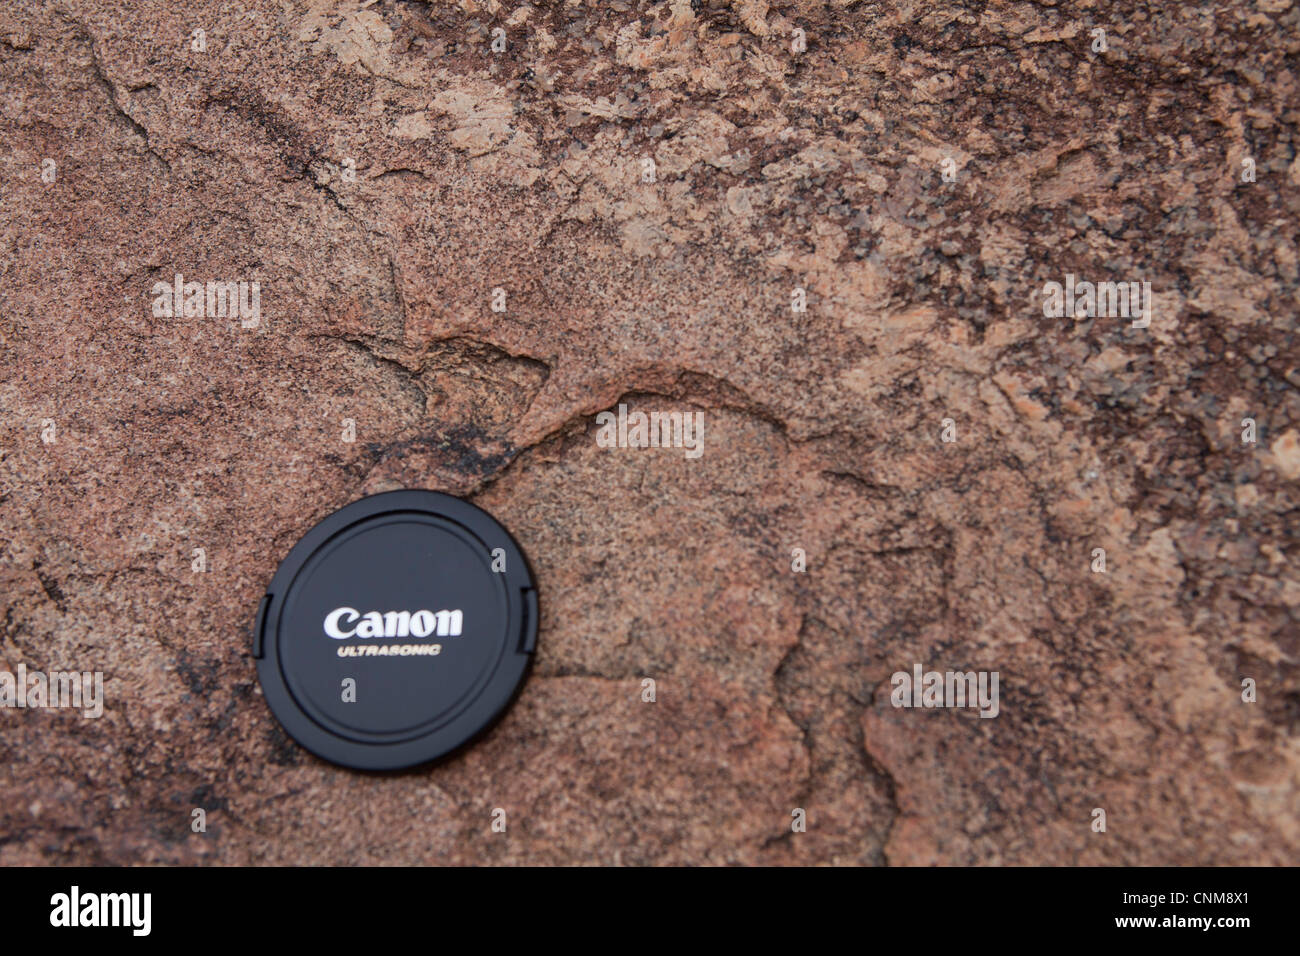 A finer grained granitic material intruding a coarser grained host granite as a dyke at Wave Rock, Hyden, Australia. - Stock Image